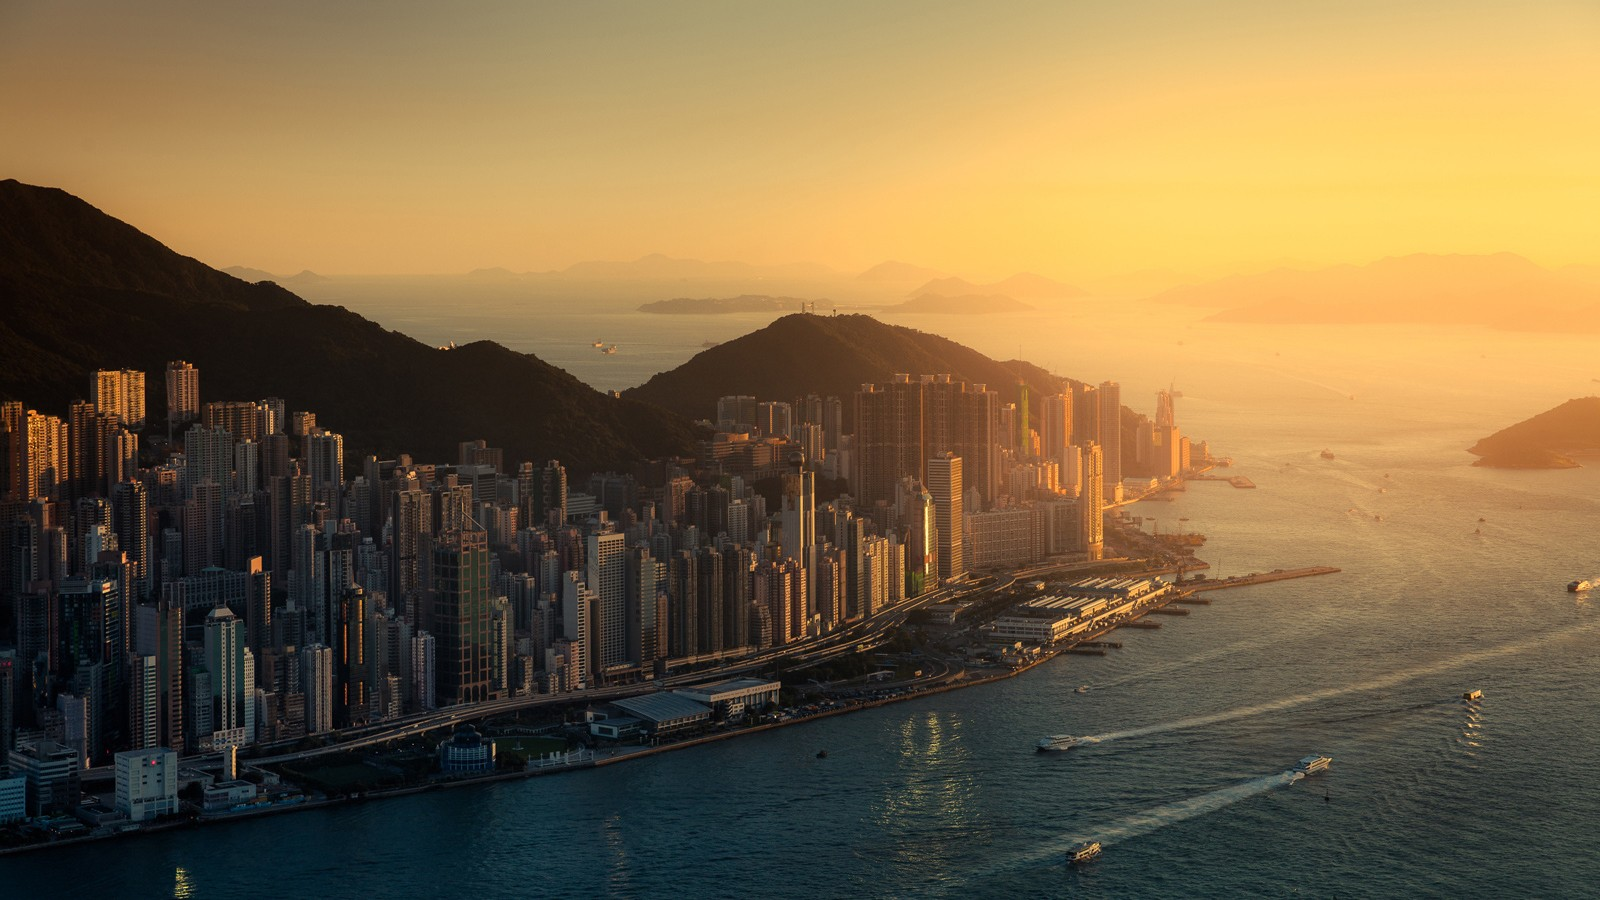 hong kong wallpaper and background image | 1600x900 | id:434782